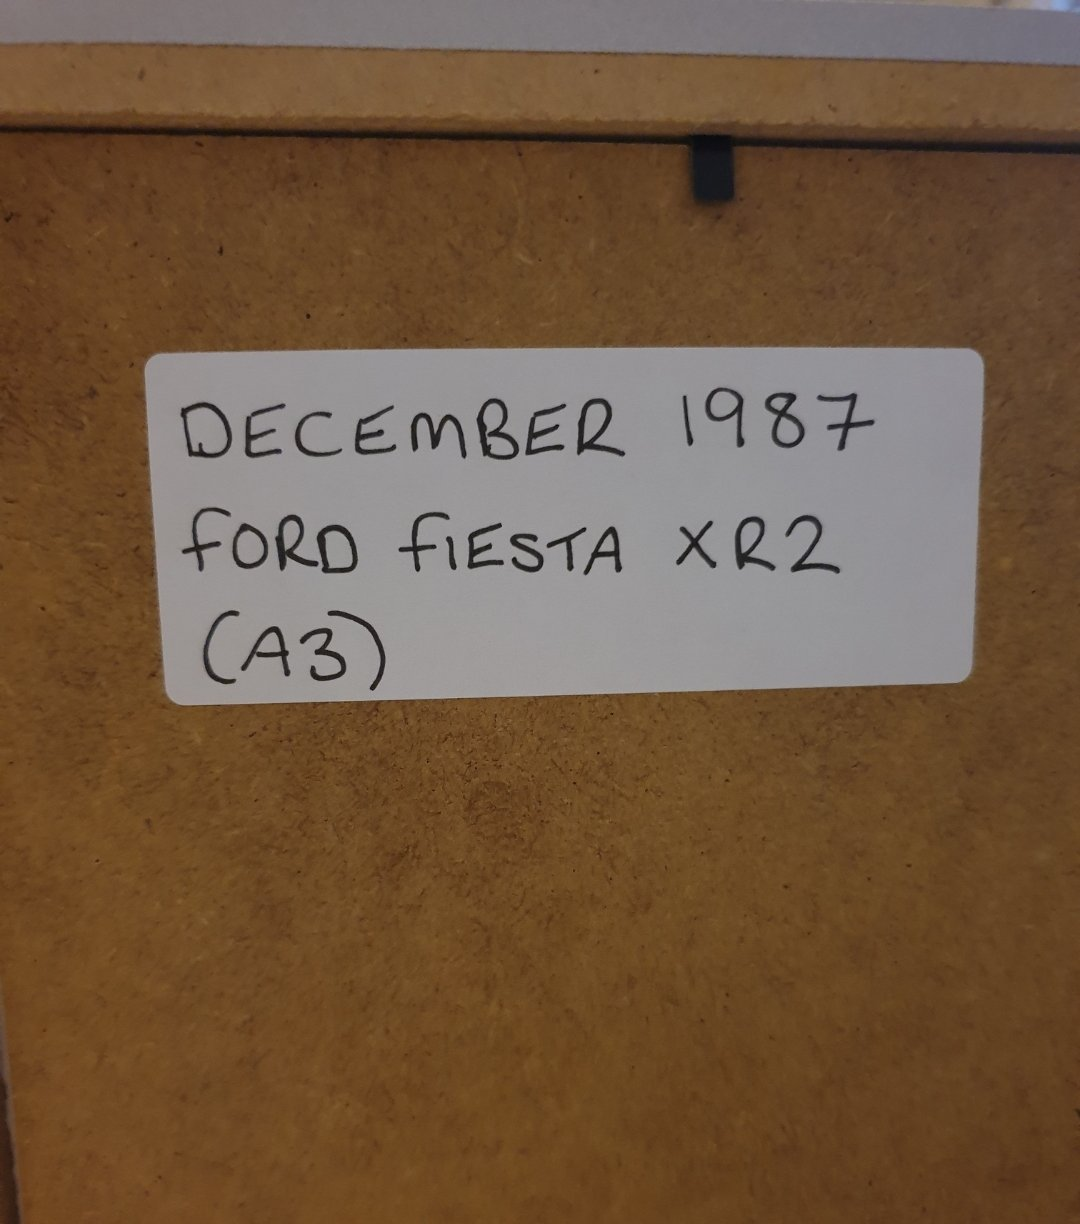 Original 1987 Ford Fiesta XR2 Framed Advert For Sale (picture 2 of 3)